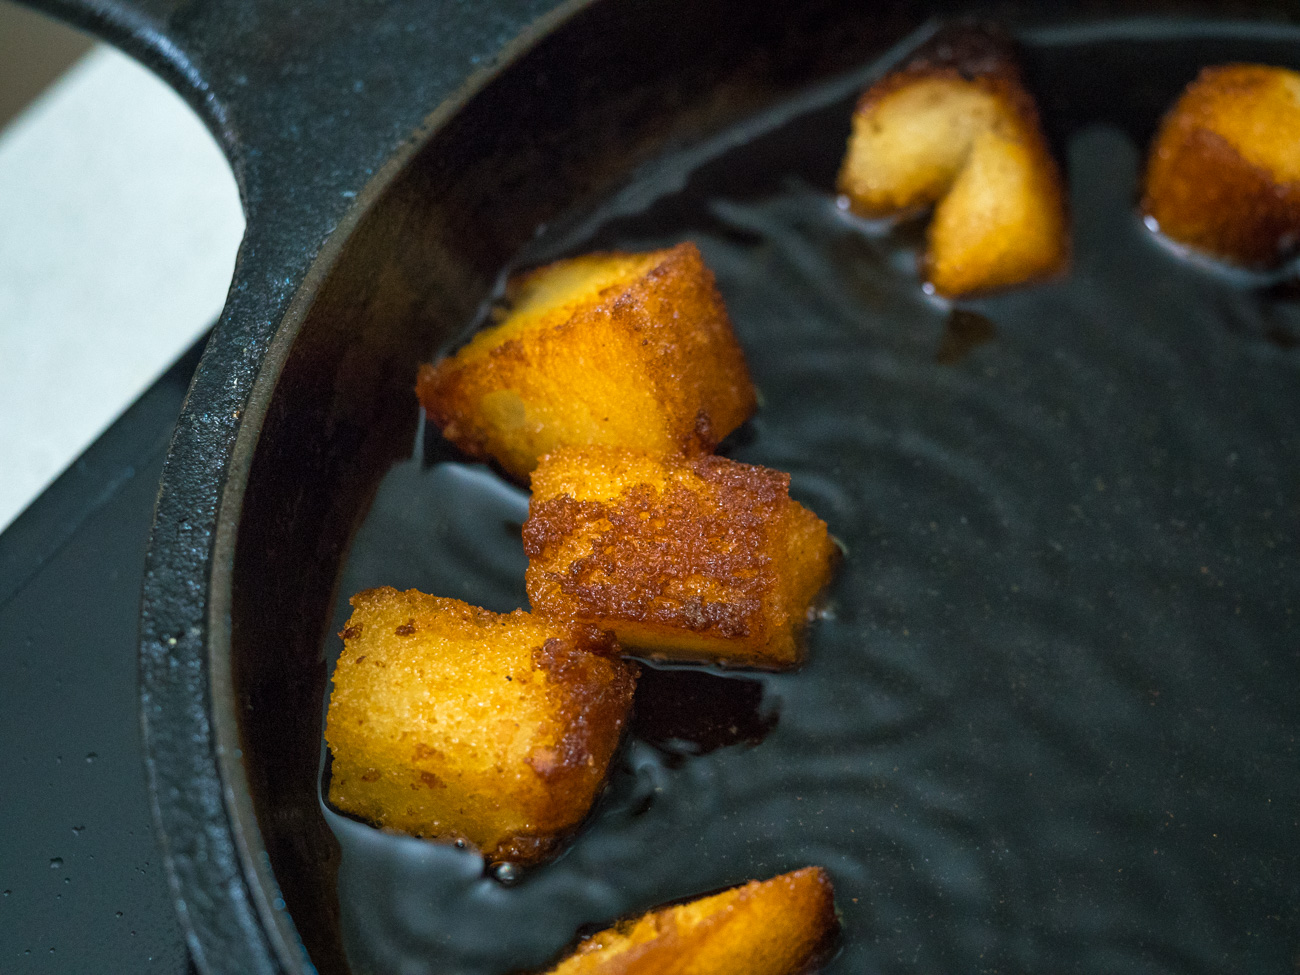 Heat vegetable oil on low-medium heat. Working in batches, fry cubes until golden brown, then immediately put cubes into cinnamon sugar mixture and toss to coat.